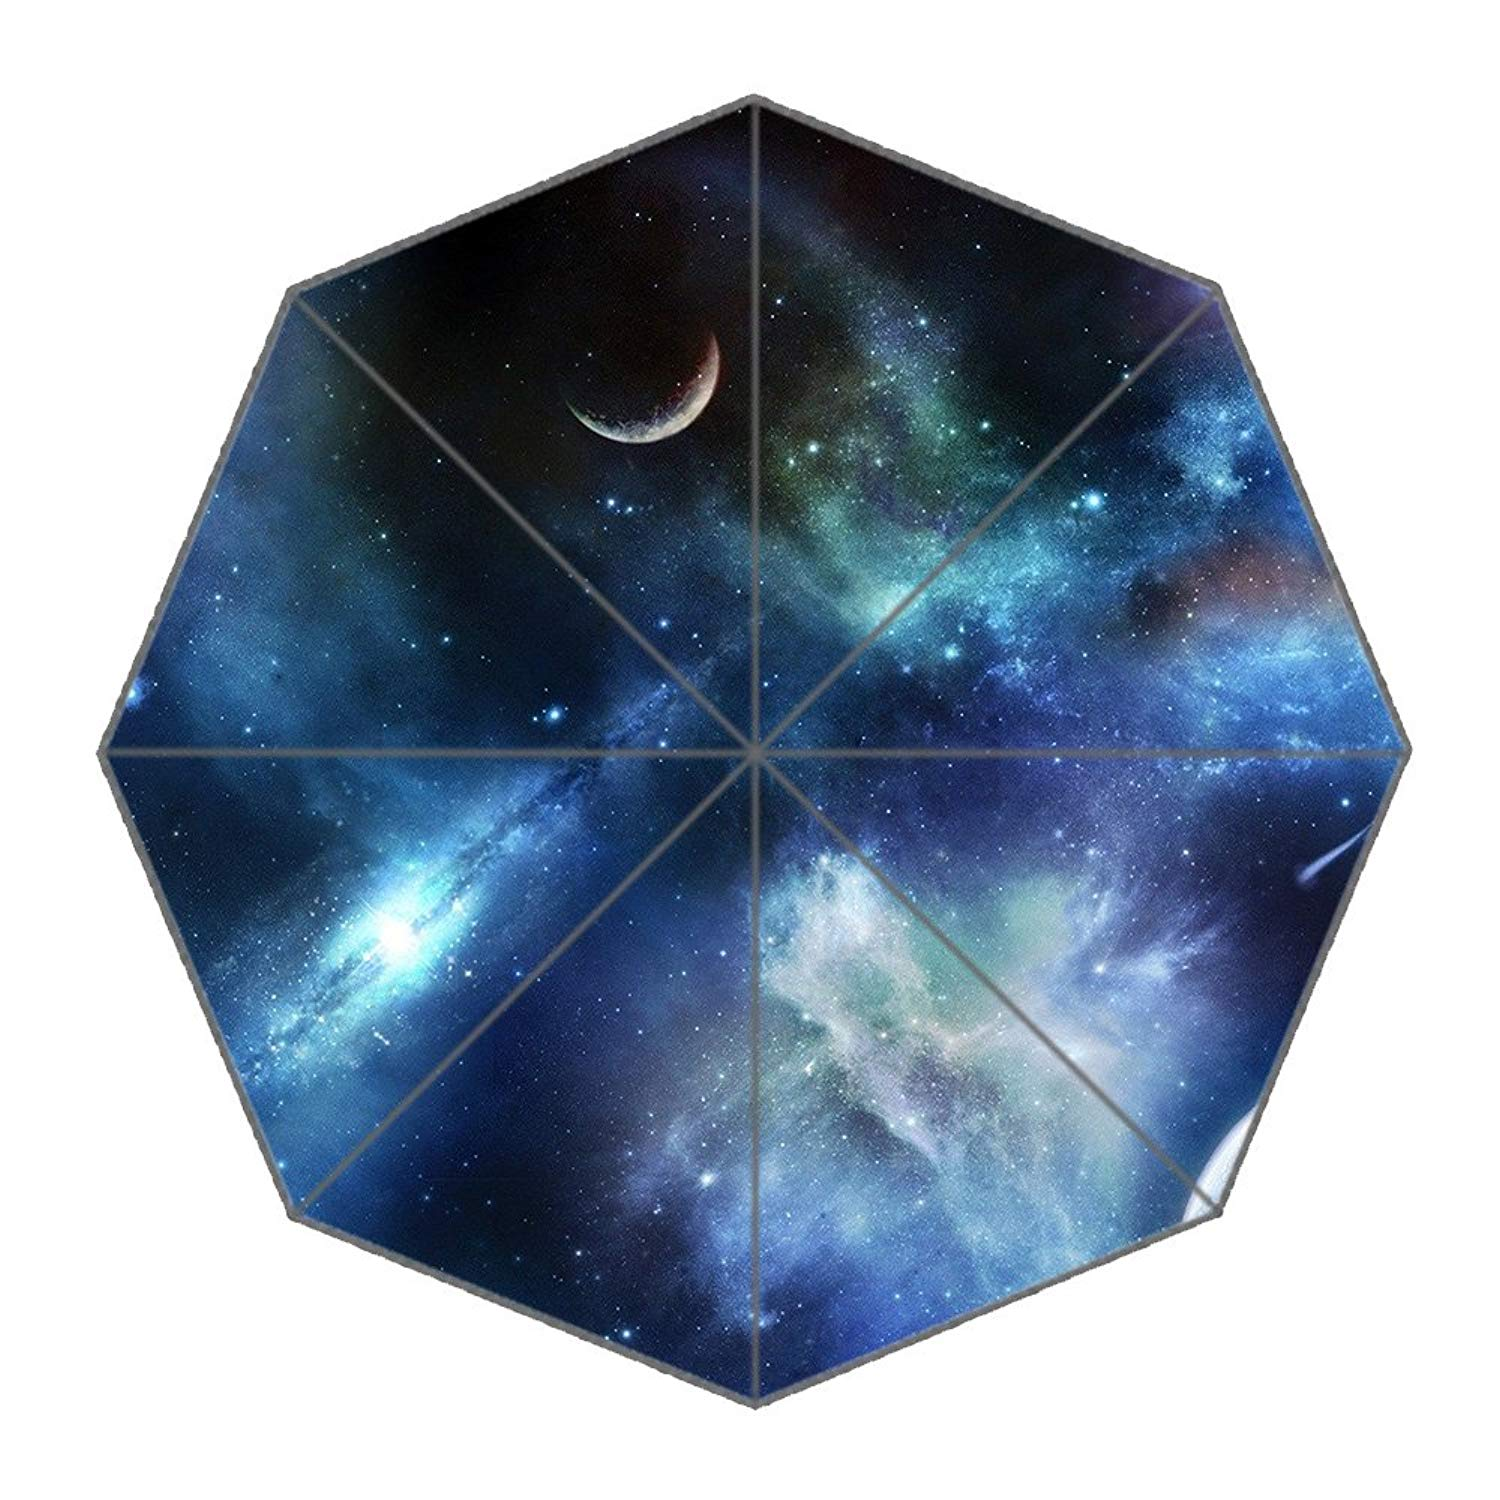 Space Galaxy Automatic Tri-Fold Umbrella Parasol Sun Umbrella Sunshade